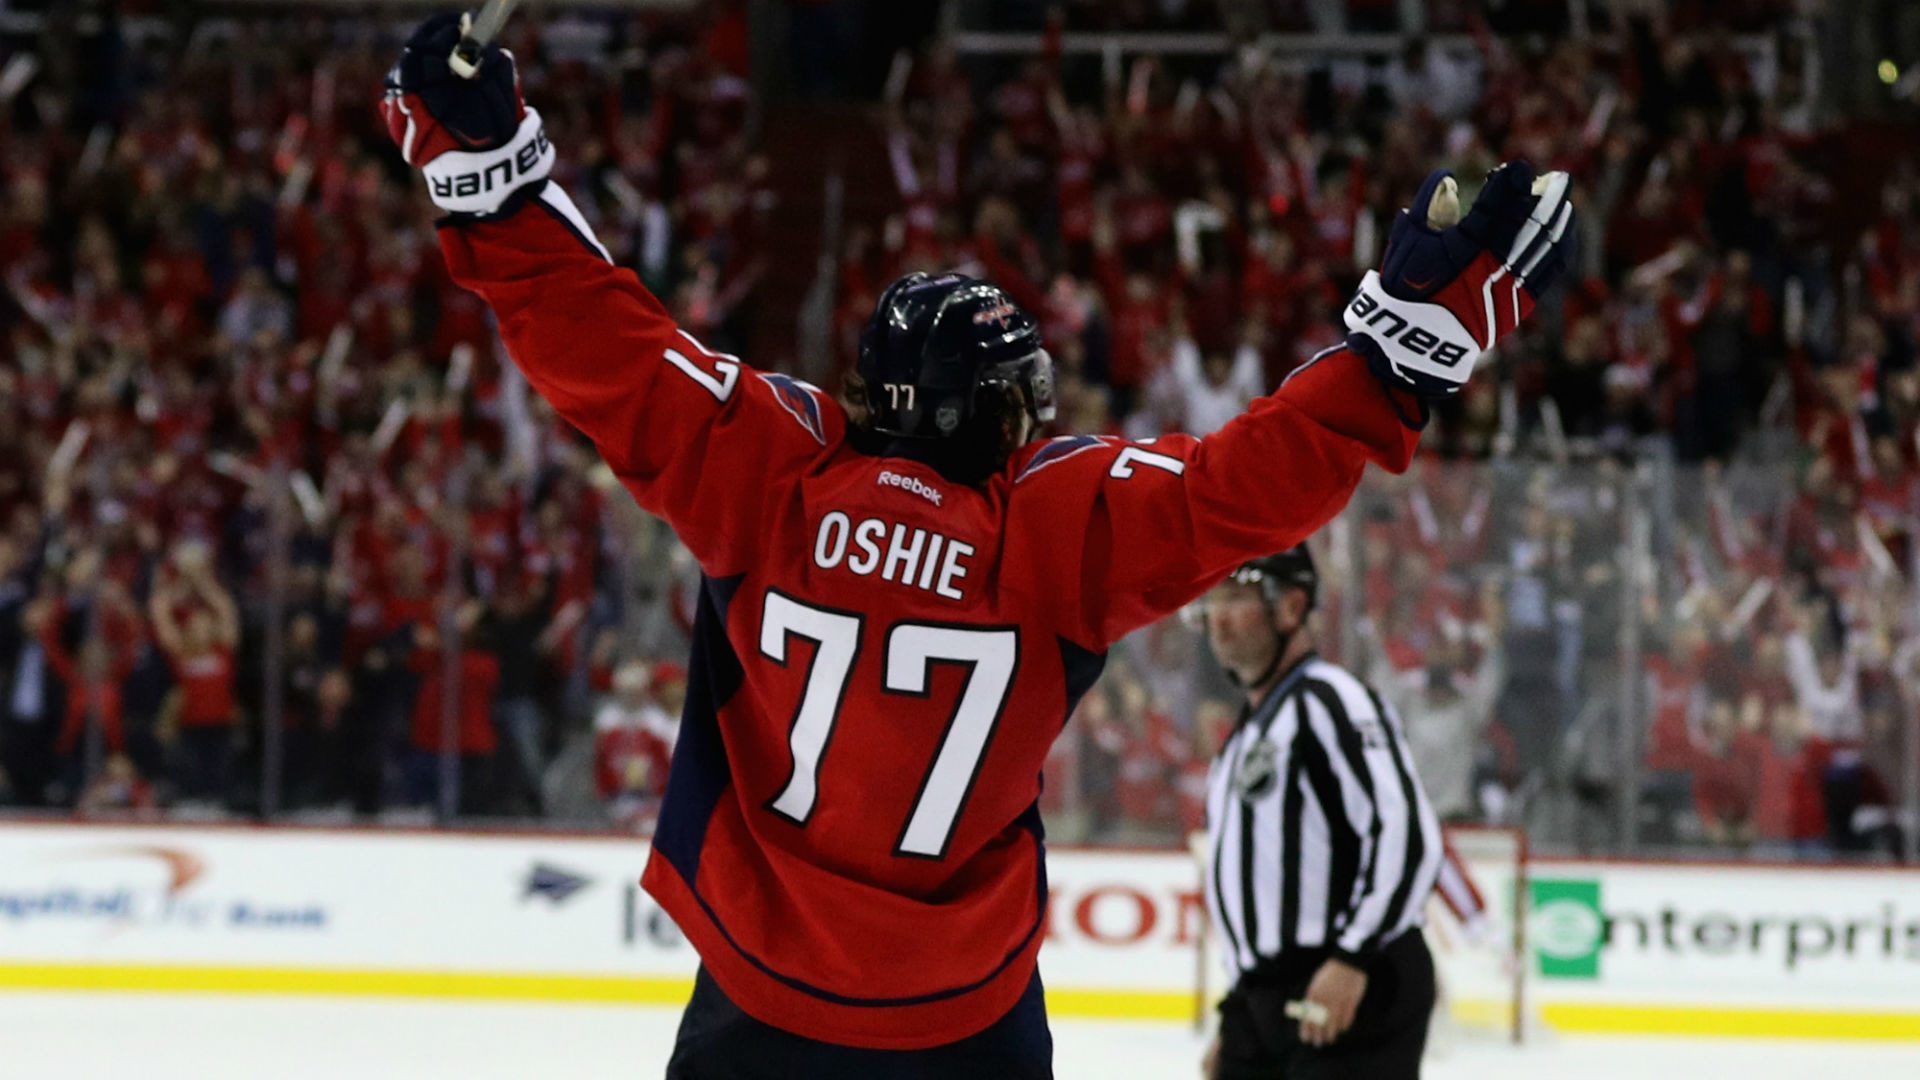 1920x1080 Stanley Cup playoffs three stars: T.J. Oshie completes hat trick to stun  Penguins in OT | NHL | Sporting News